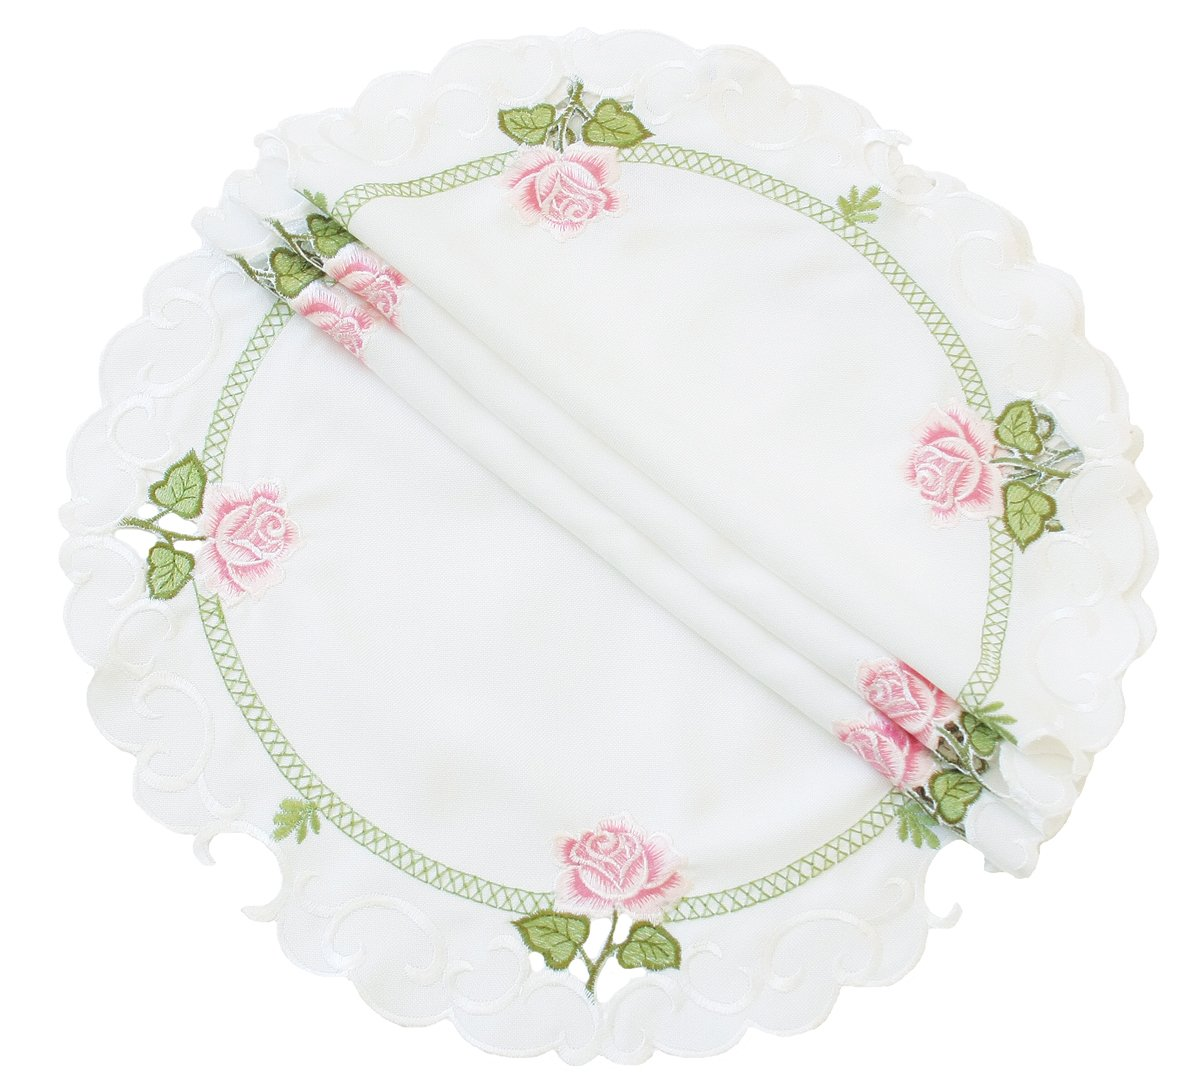 Xia Home Fashions Summer Rose Embroidered Cutwork Spring Doilies, 12-Inch Round, Set of 4